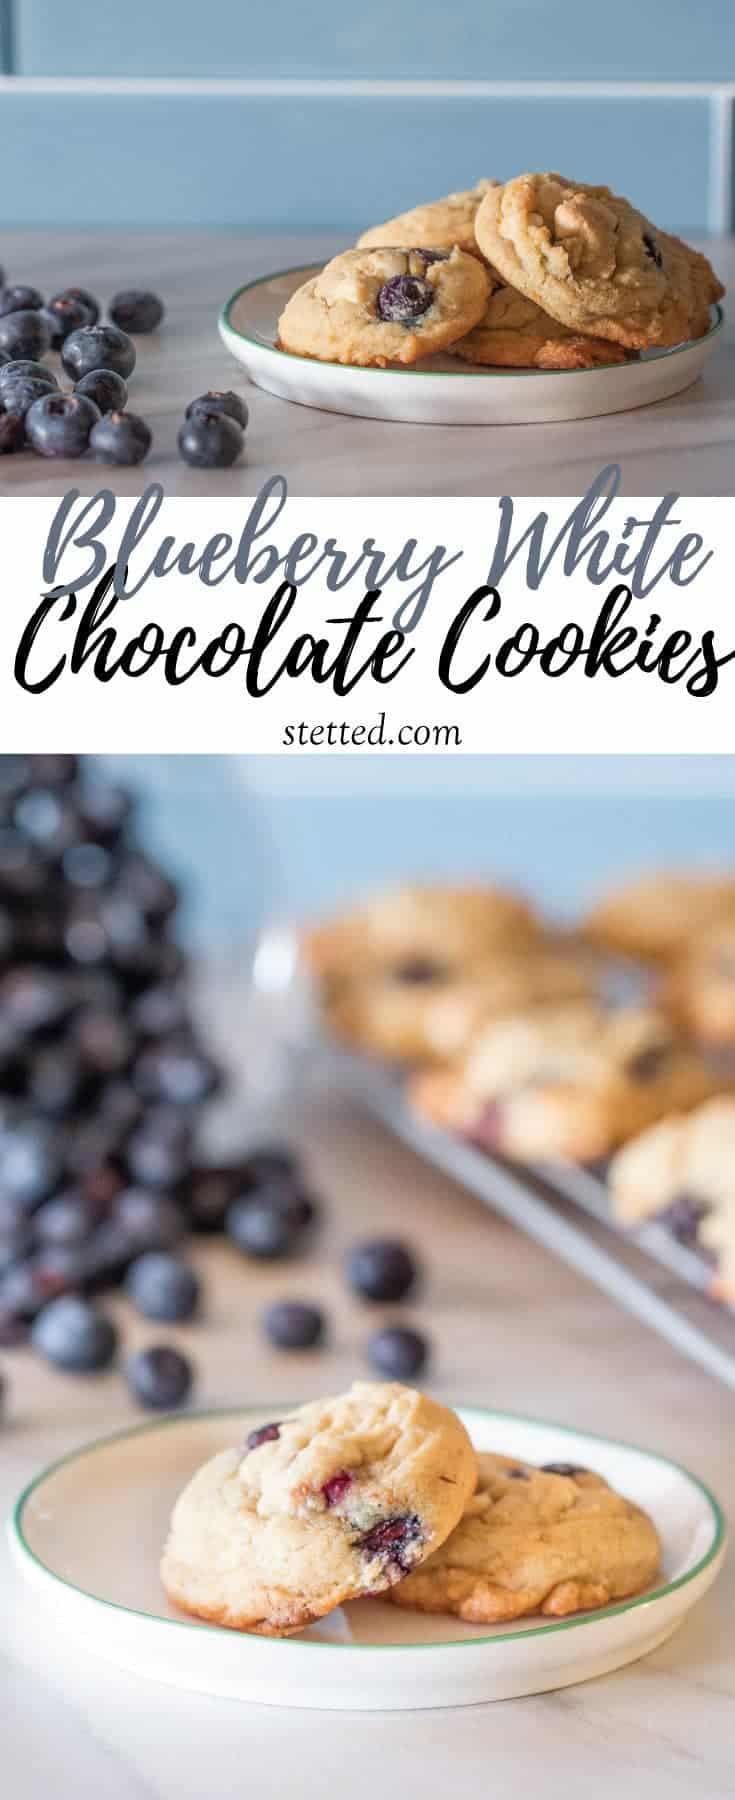 Blueberry white chocolate cookies are completely unexpected, yet totally delicious! You'll love this summery cookie.